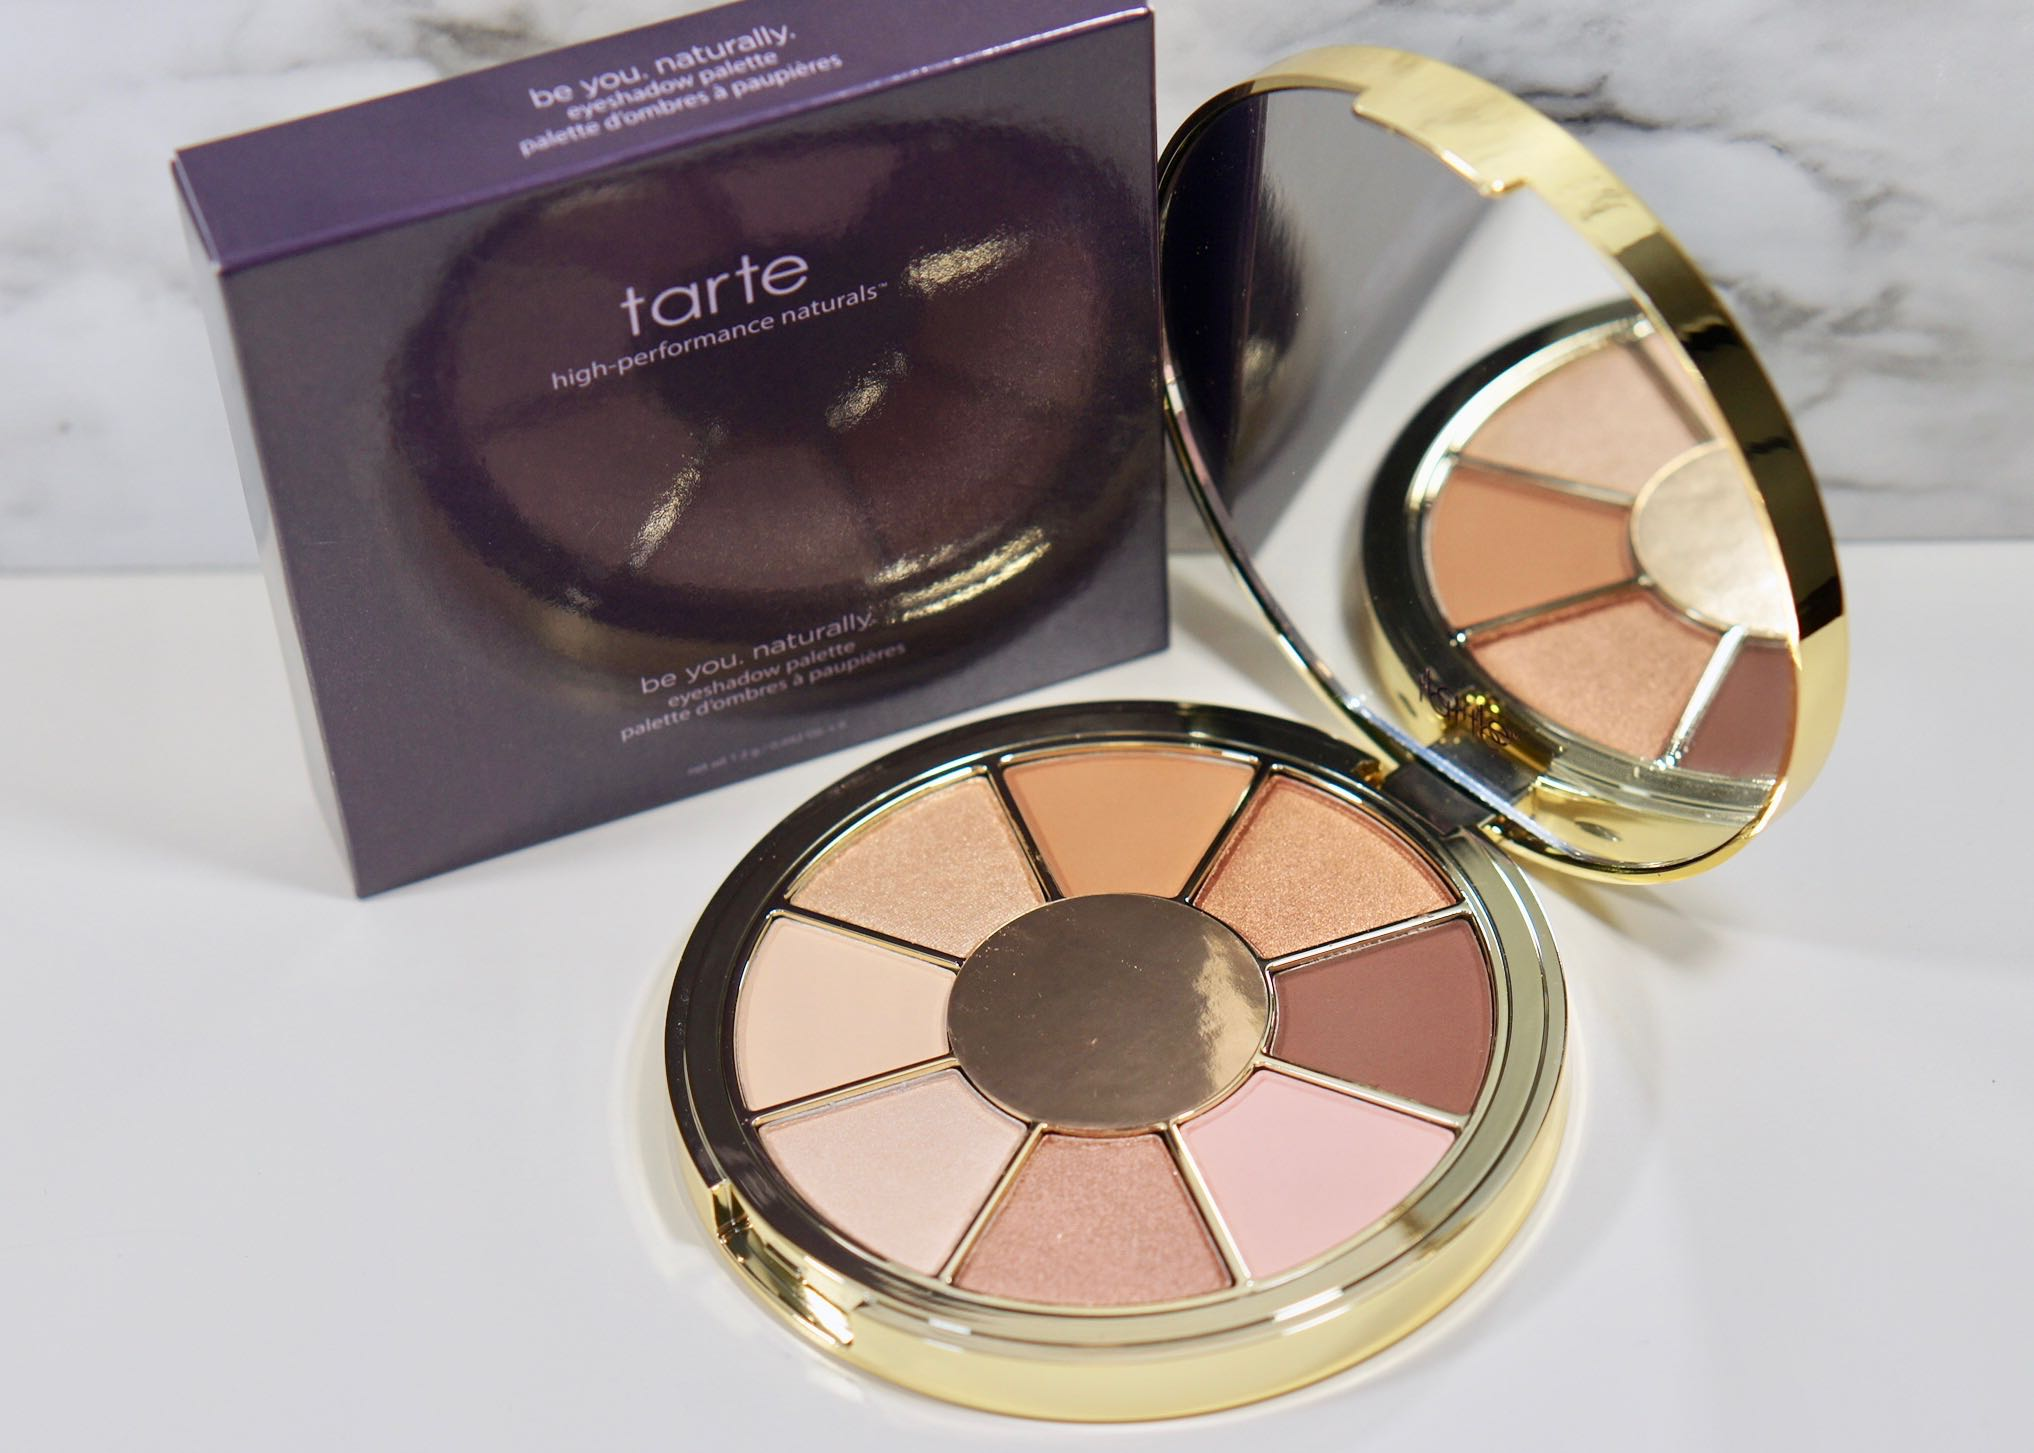 Tarte-Be you. Naturally. Eyeshadow paletteDSC01506.jpg